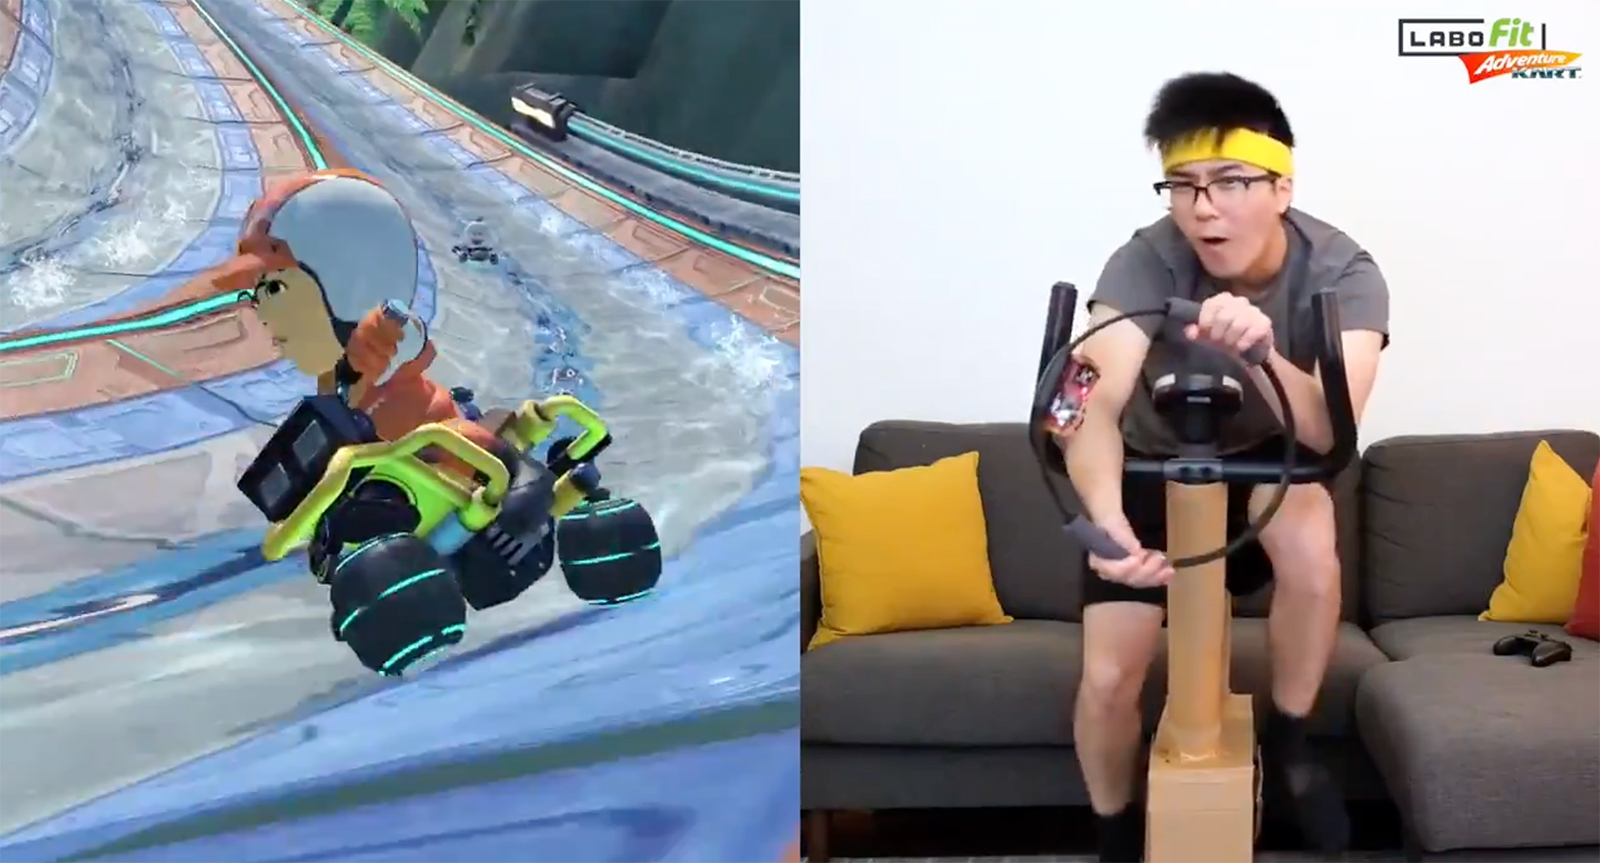 Homebrew Labo kit gives you a full-body 'Mario Kart' workout | DeviceDaily.com